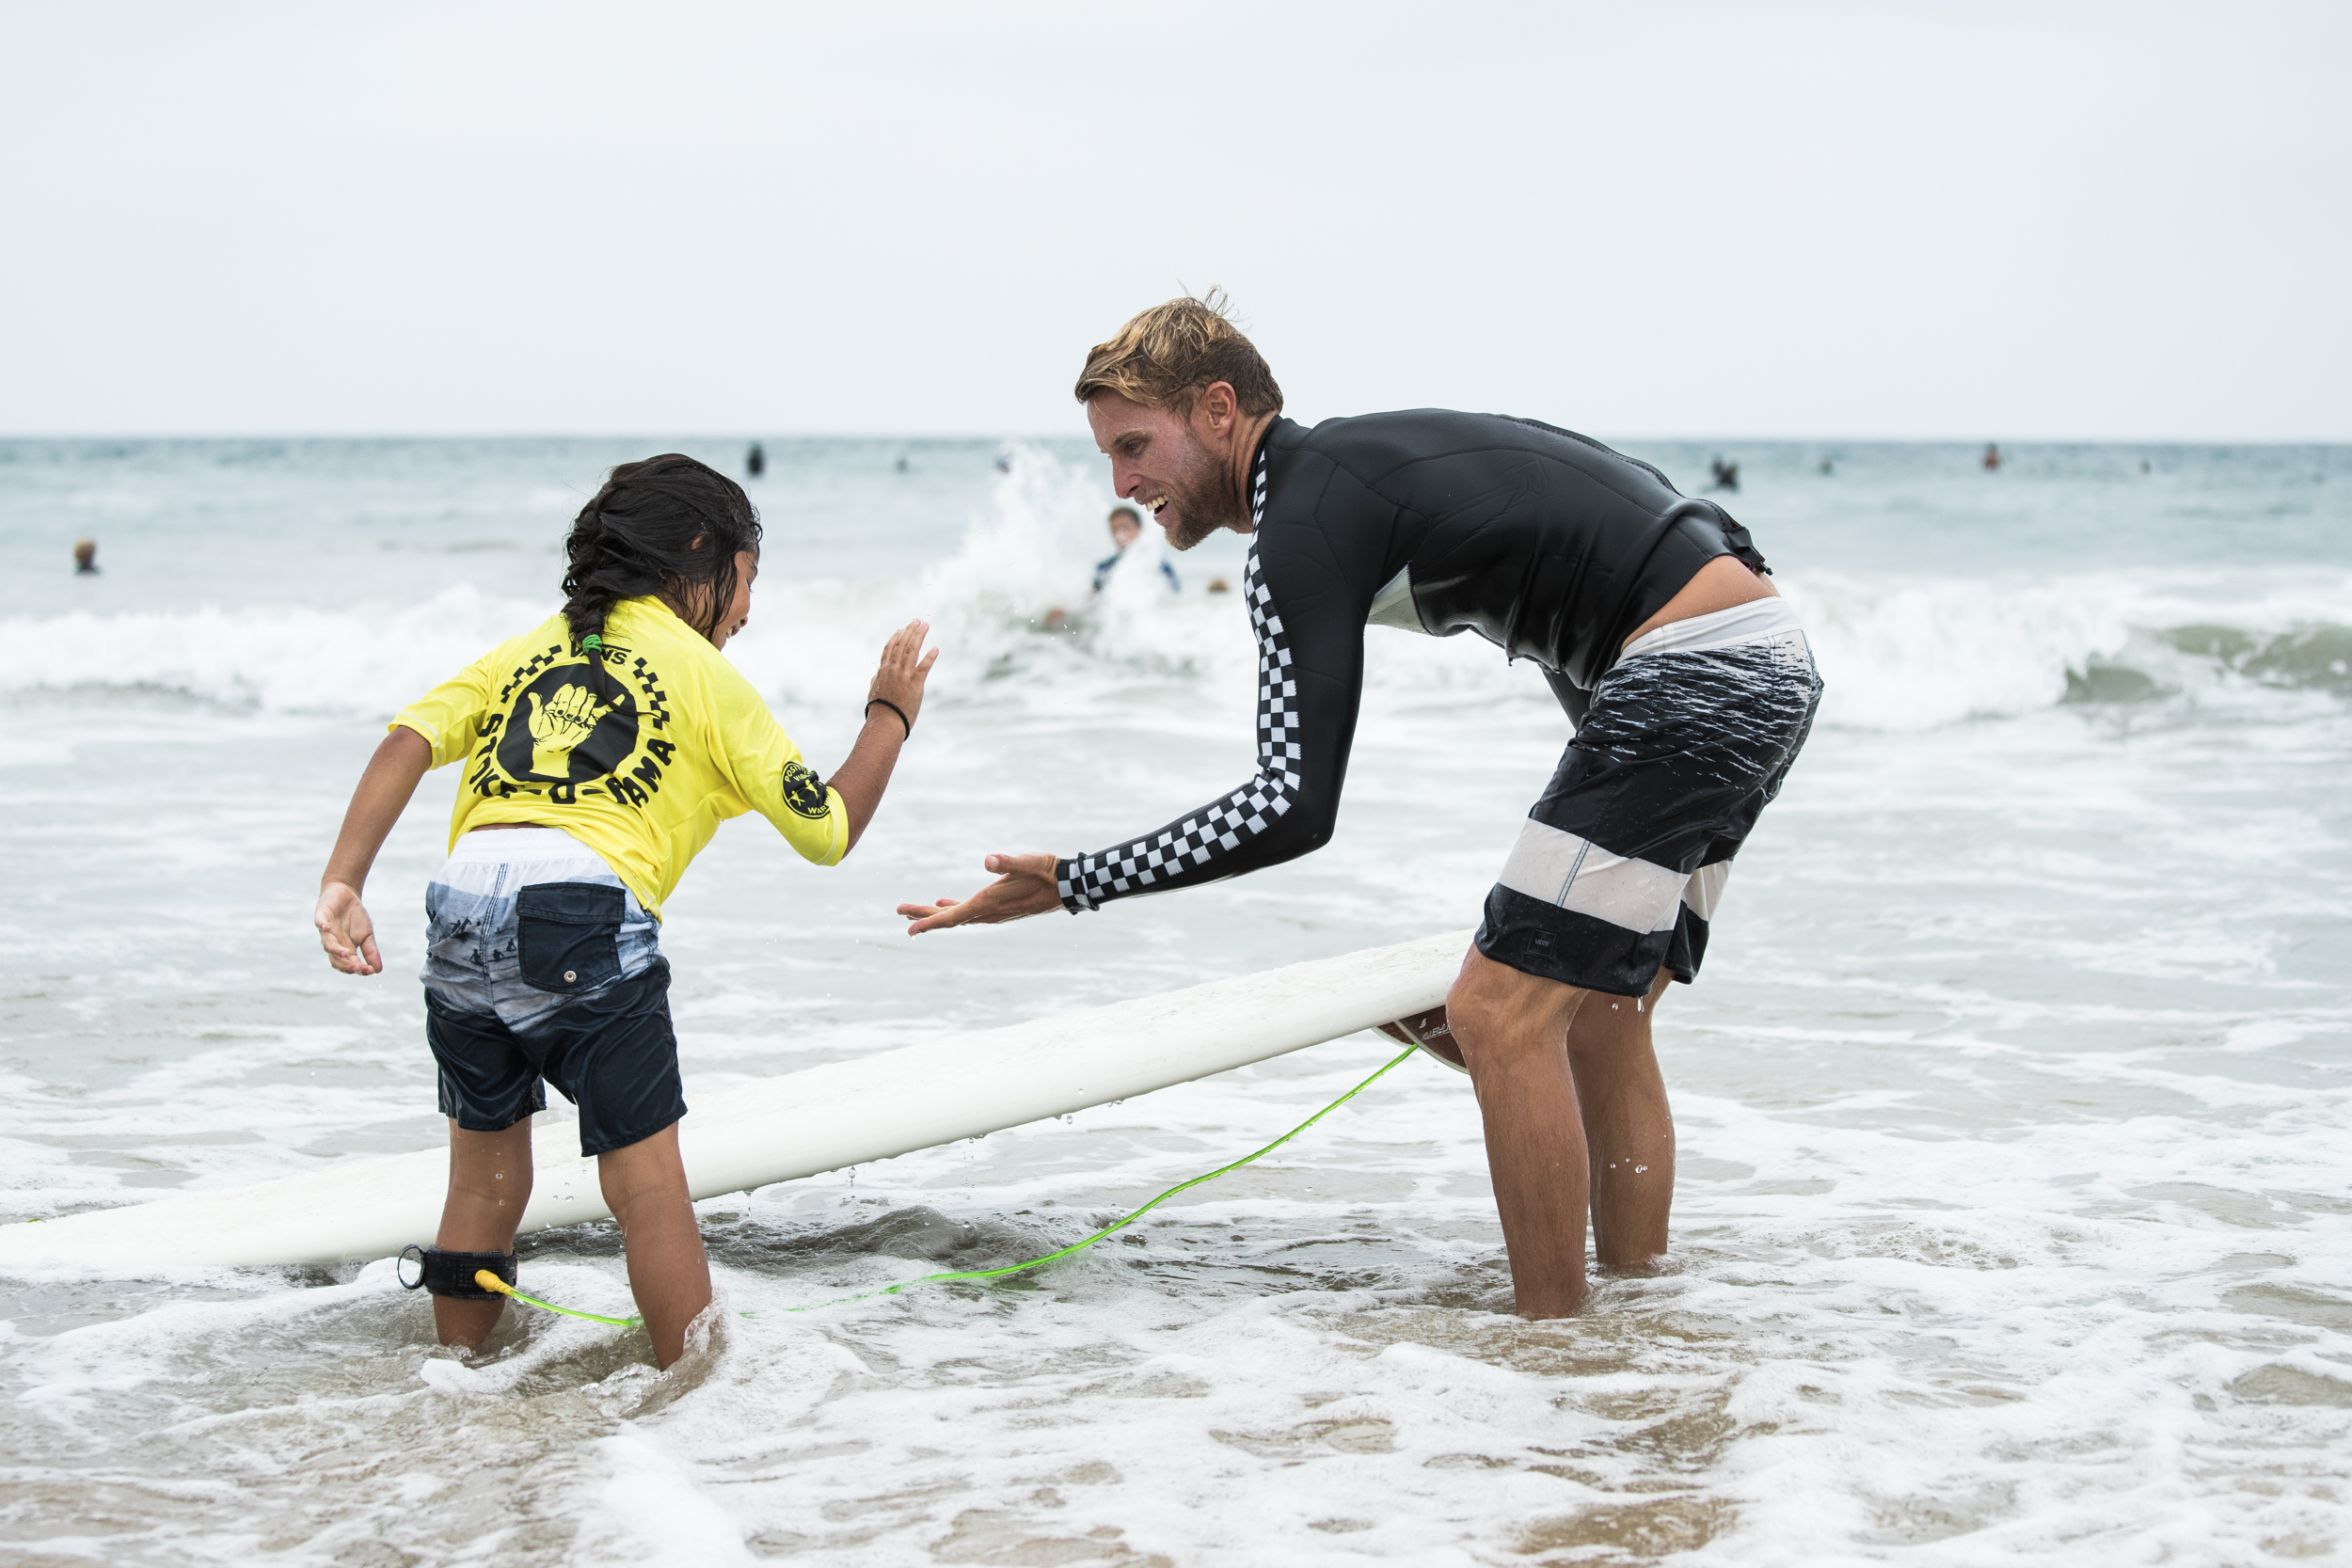 Pat Gudauskas and friend keeping the vibe alive at a Stoke-O-Rama contest last summer. Photo: Jimmy Wilson / Vans